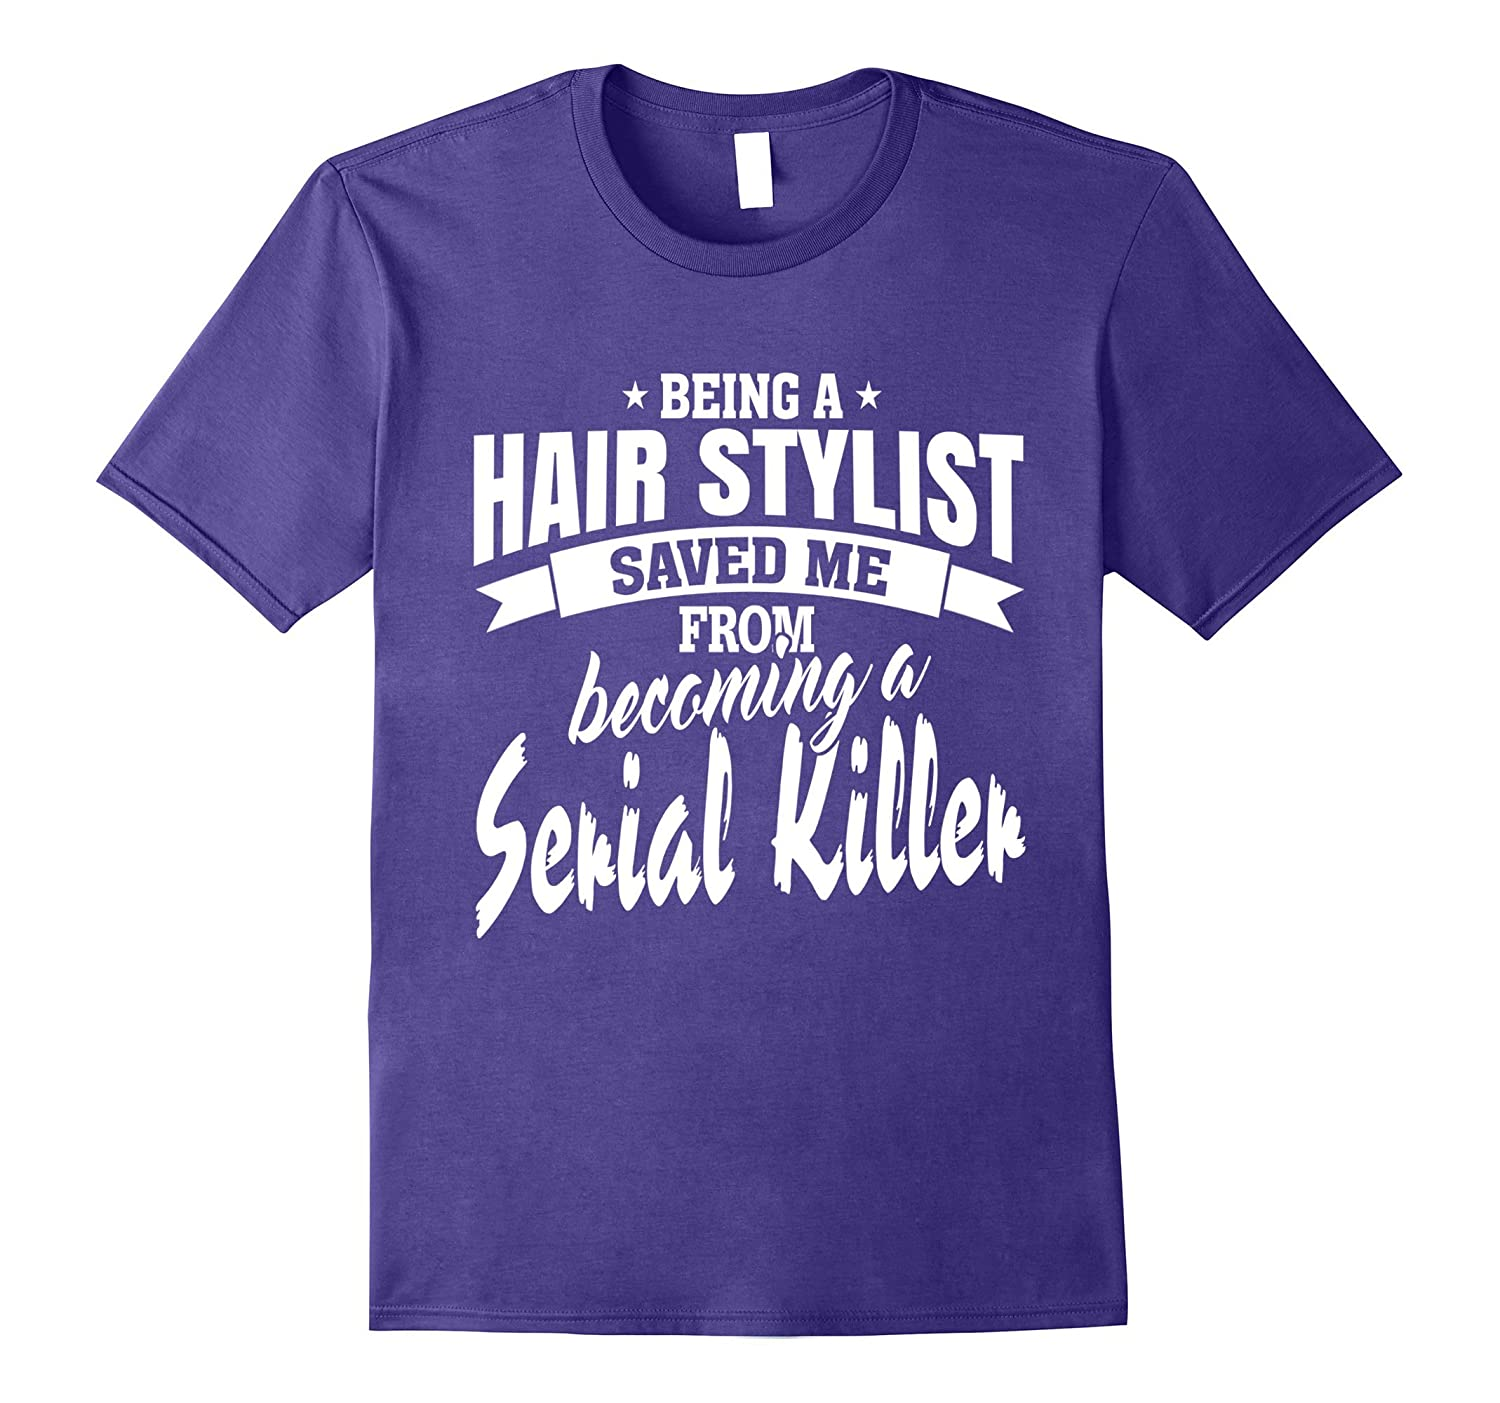 Being a Hair Stylist Gifts Tee Shirt Clothing-TJ